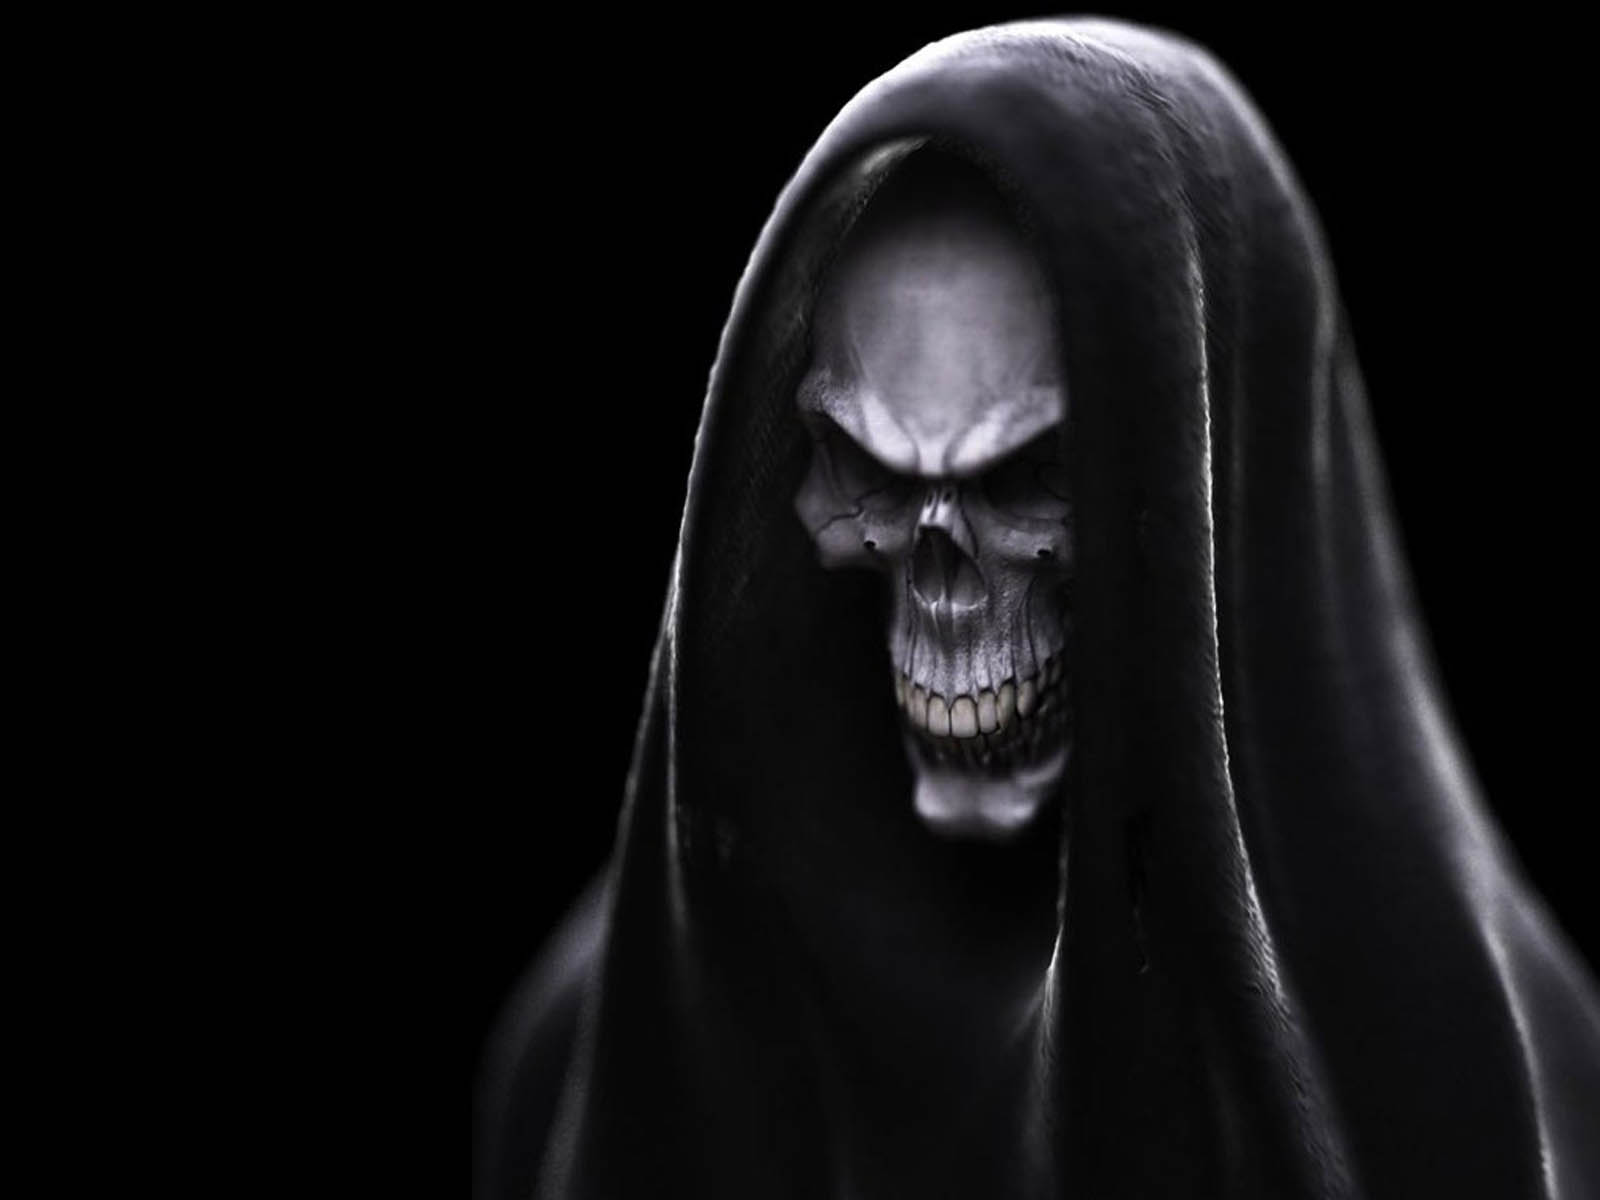 Free Download Skull Wallpapers Images Photos Pictures And